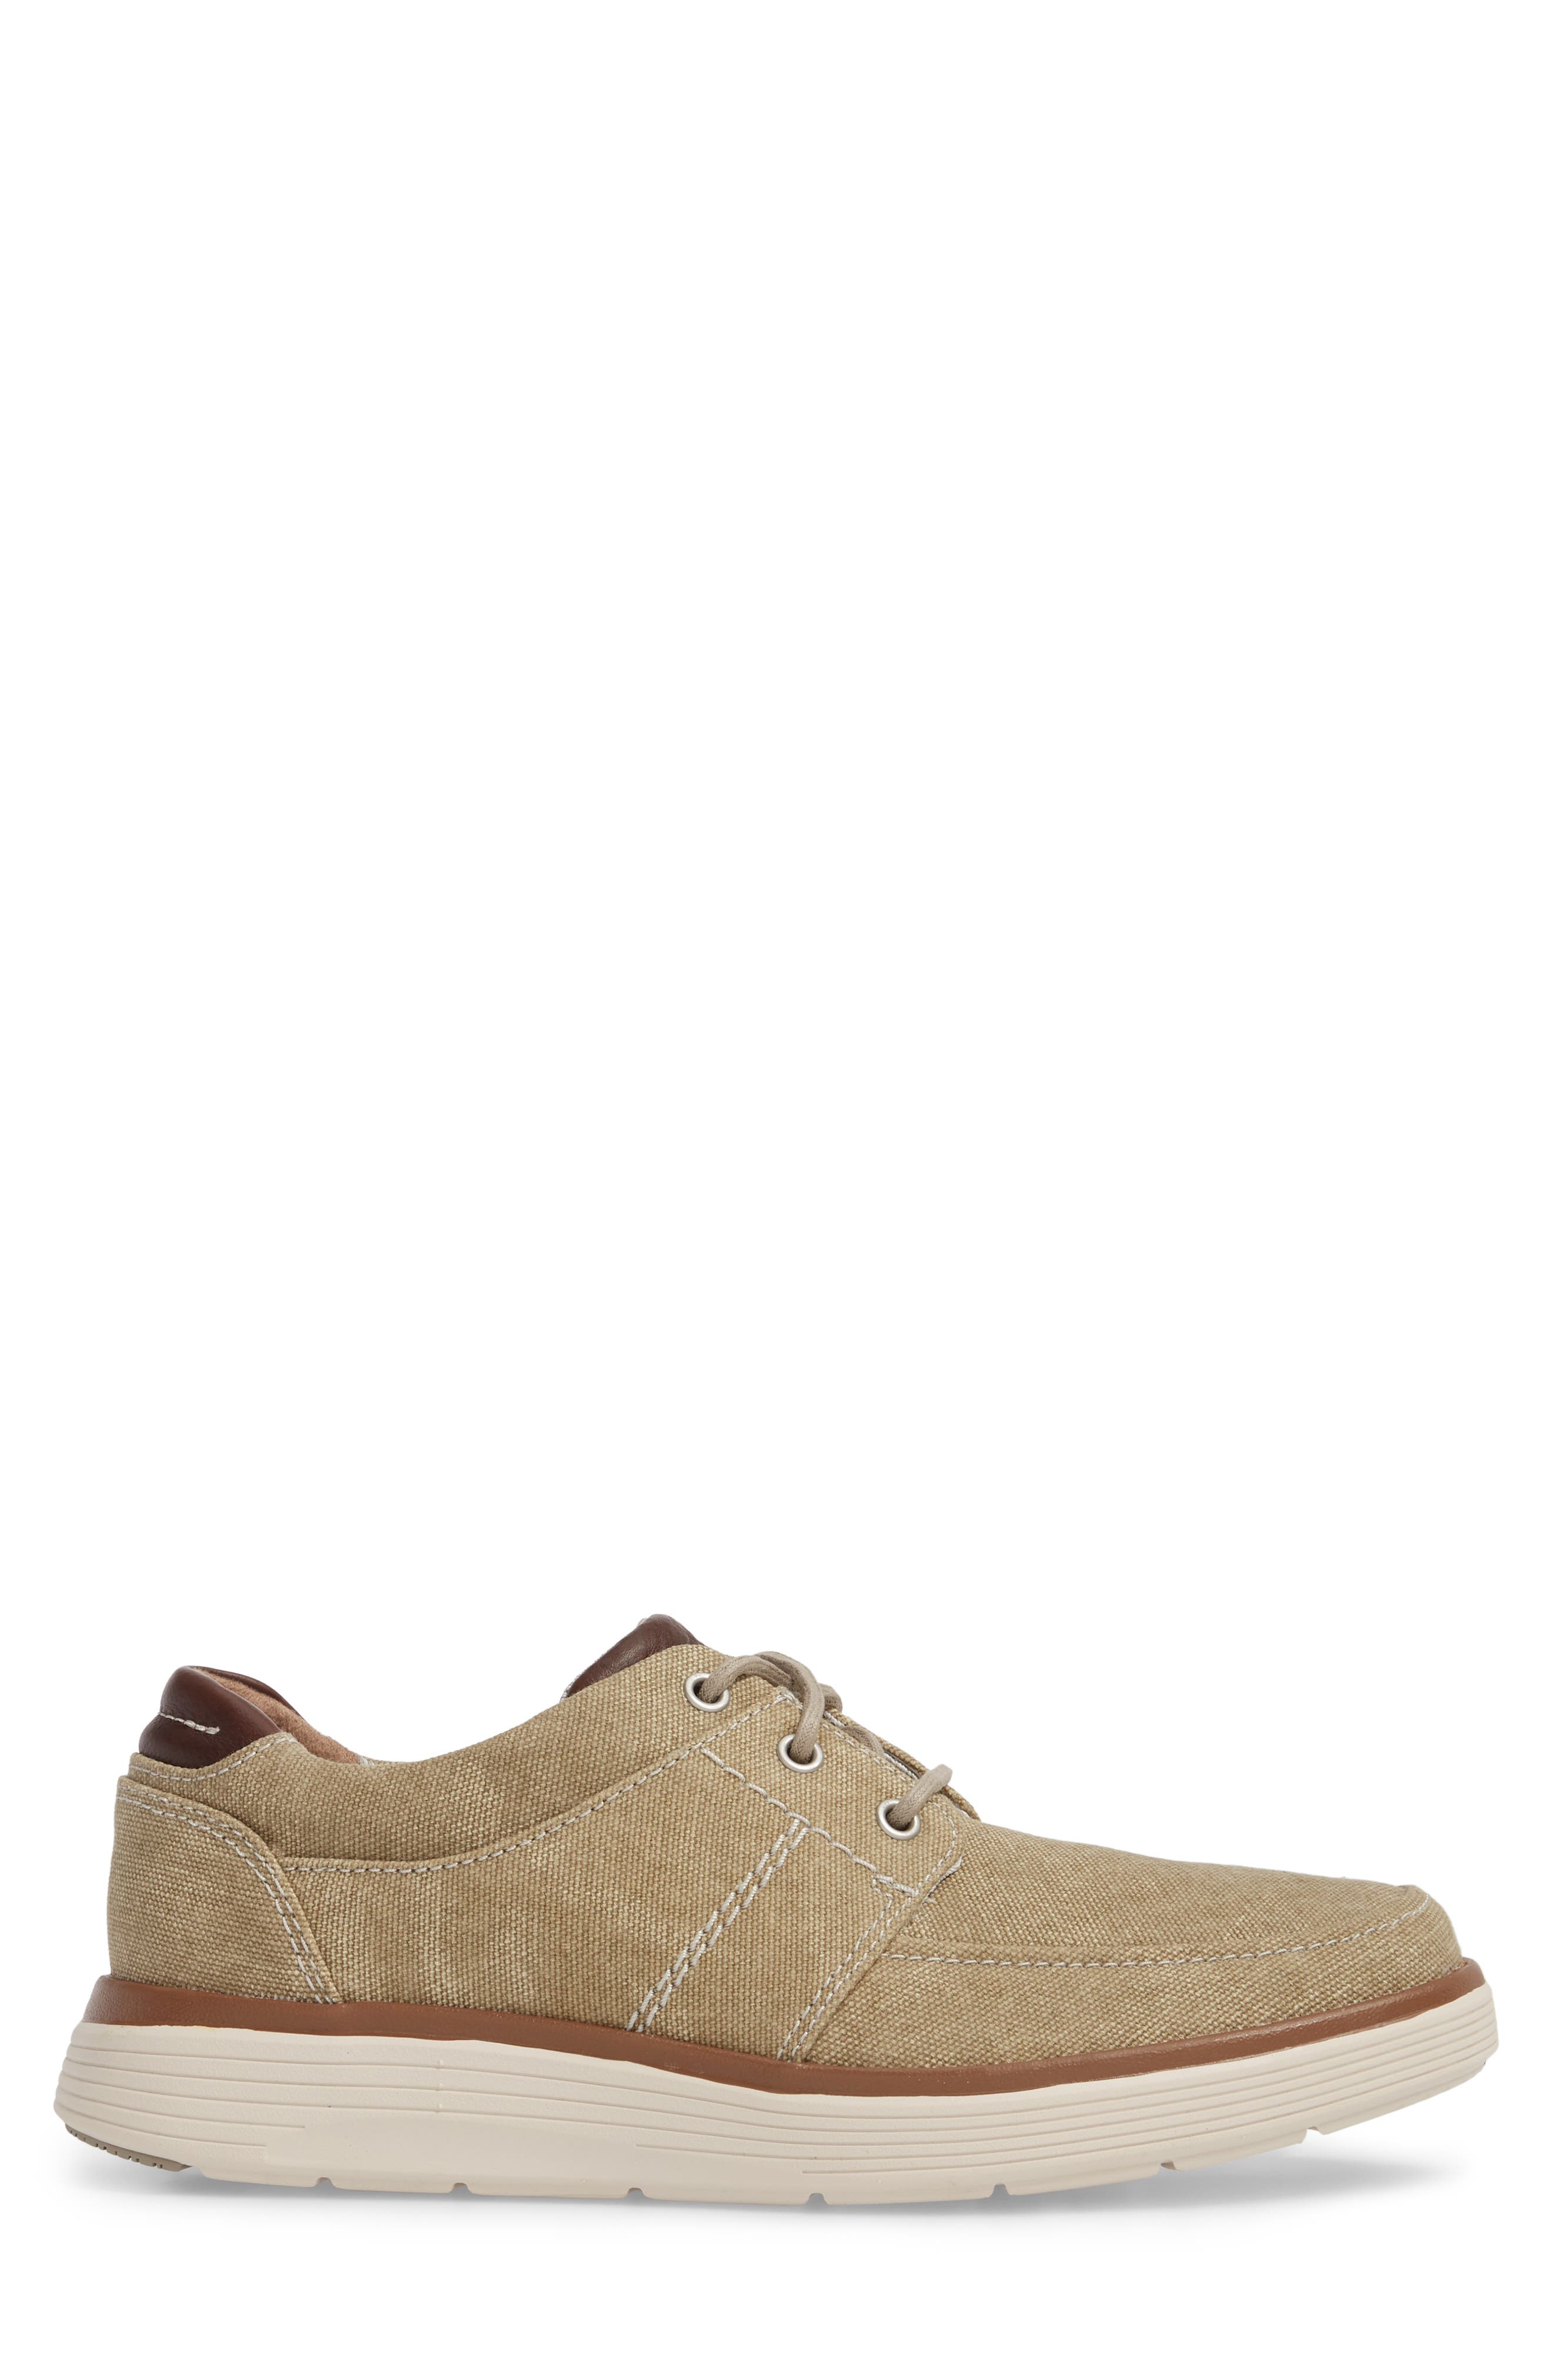 Clarks<sup>®</sup> Unabode Form Sneaker,                             Alternate thumbnail 3, color,                             SAND FABRIC